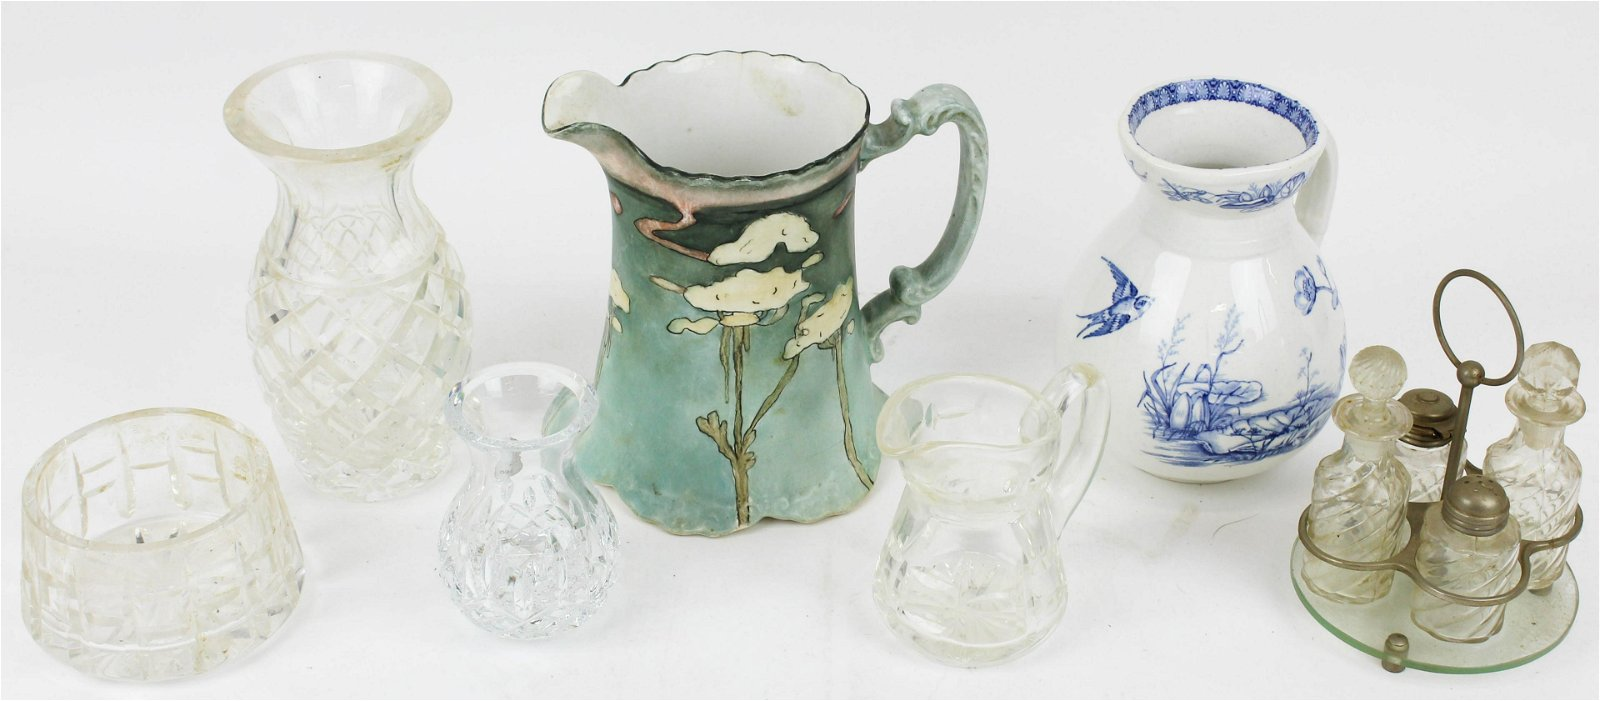 Waterford Irish Crystal and Porcelain Pitchers